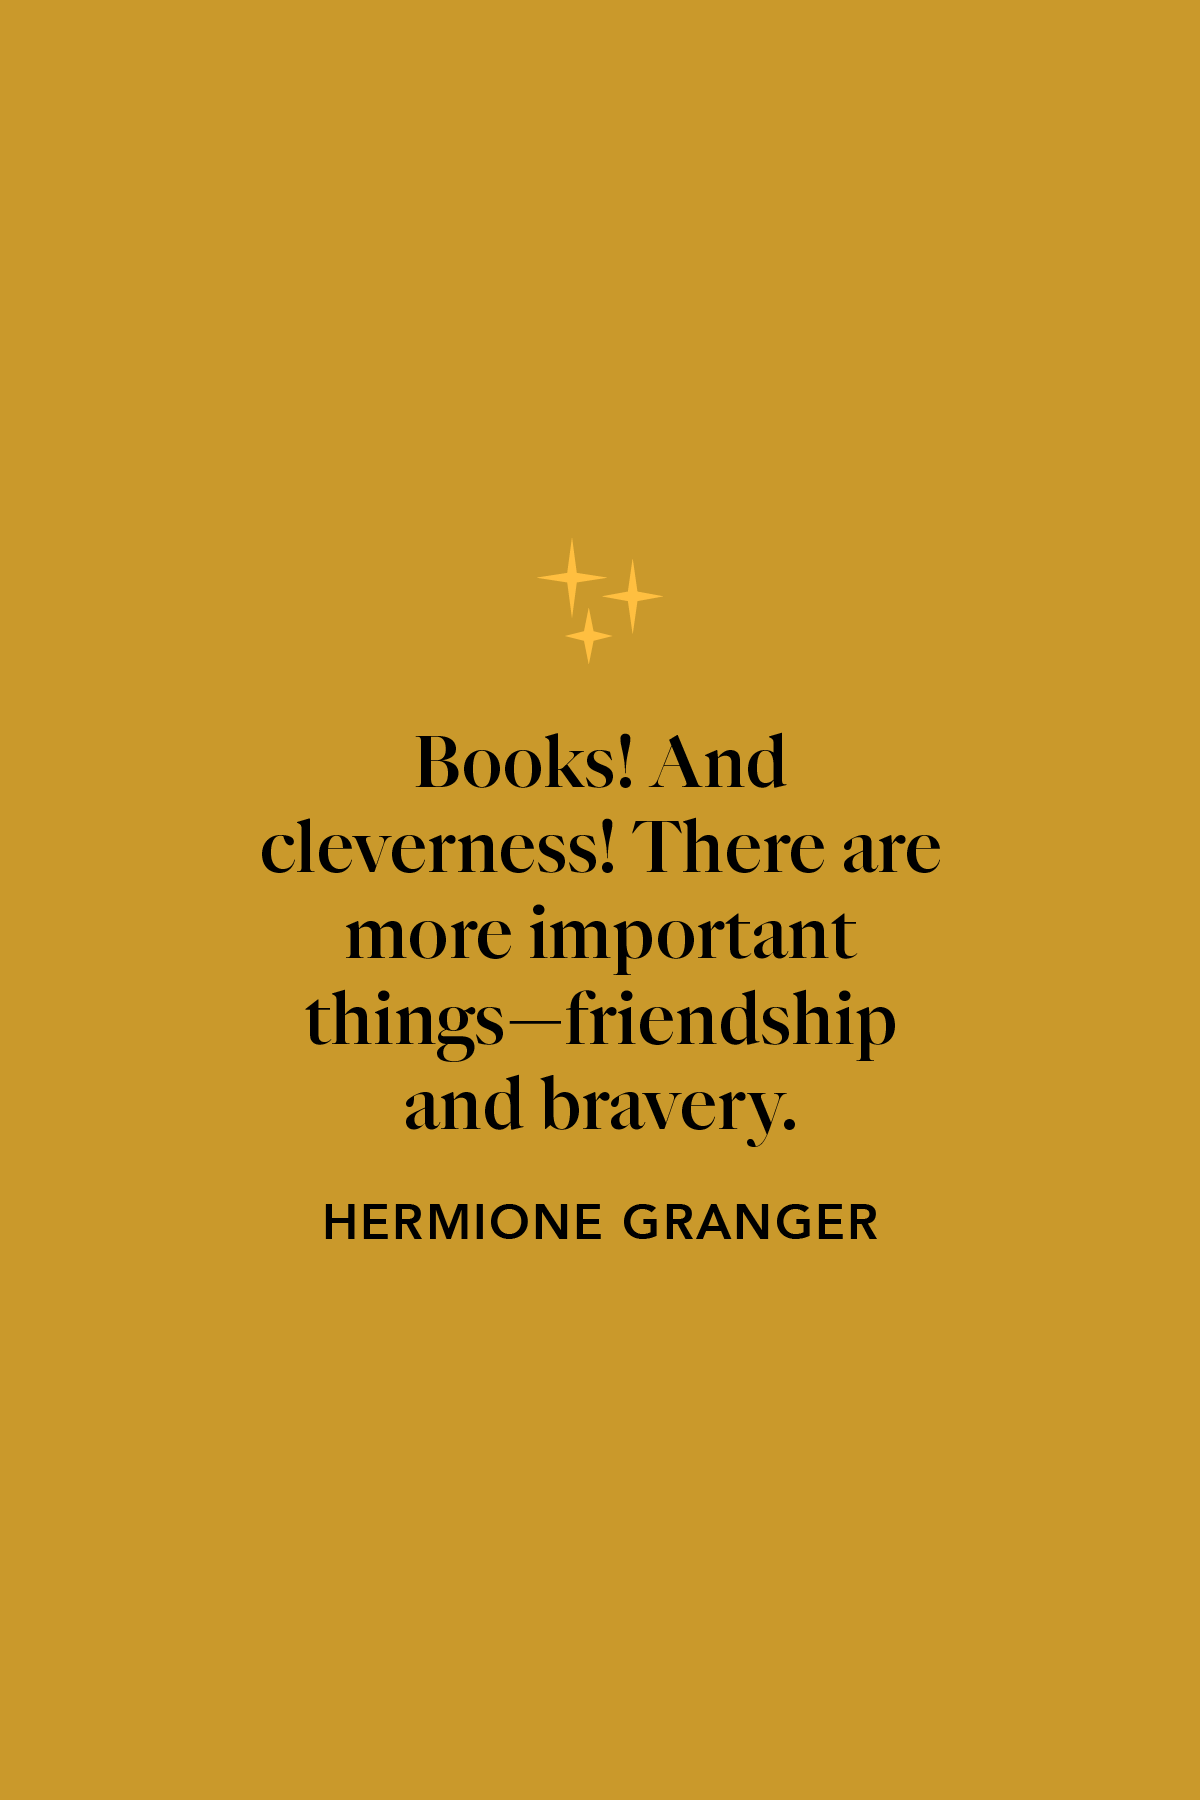 40 Inspiring Harry Potter Quotes From Dumbledore Hermione More